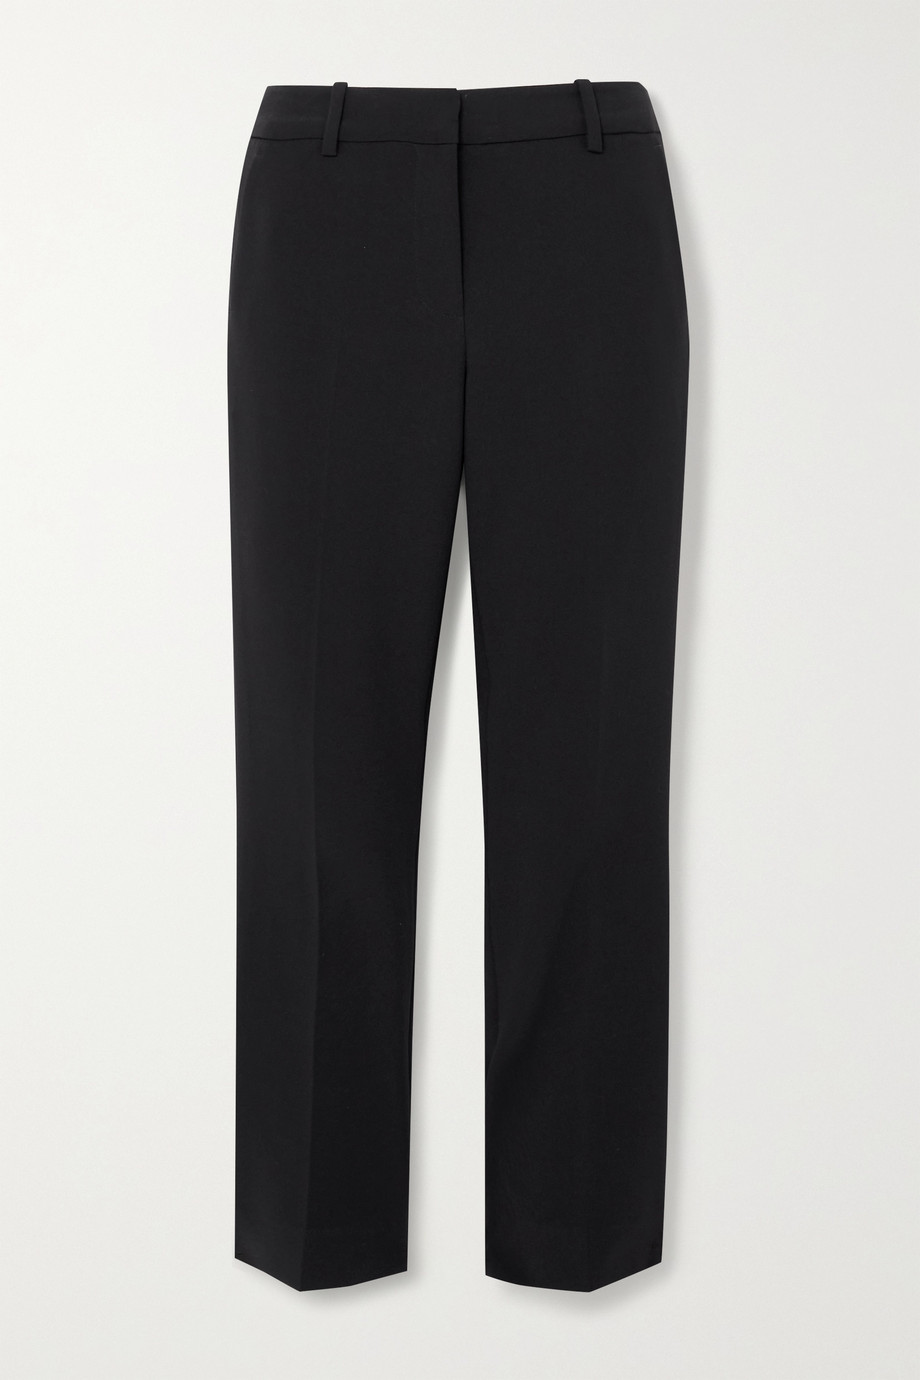 HOLZWEILER Jasabi cropped stretch-cady flared pants